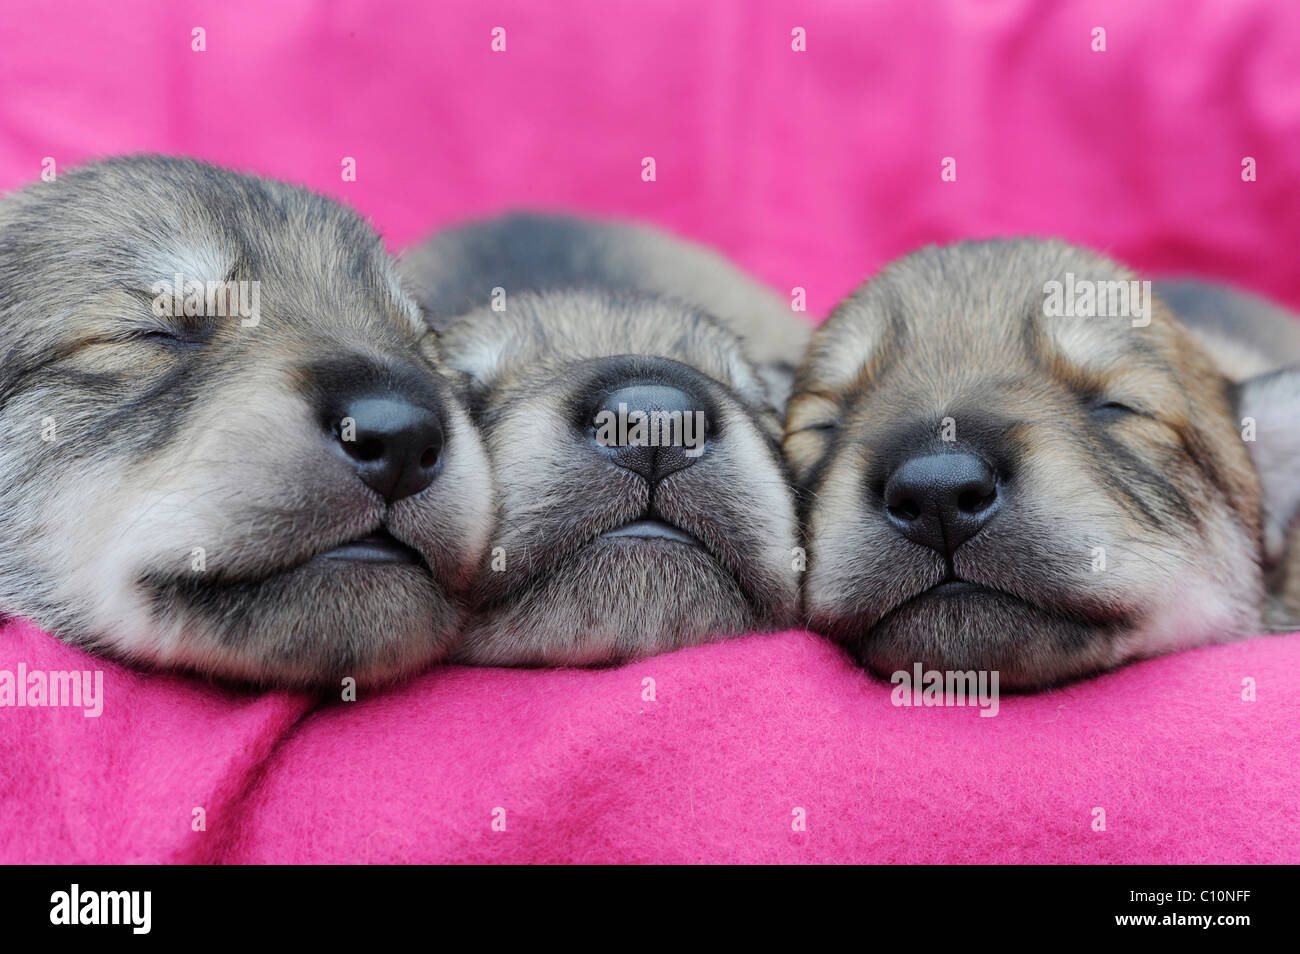 Three wolf-dog puppies, dogs' noses, sleeping - Stock Image